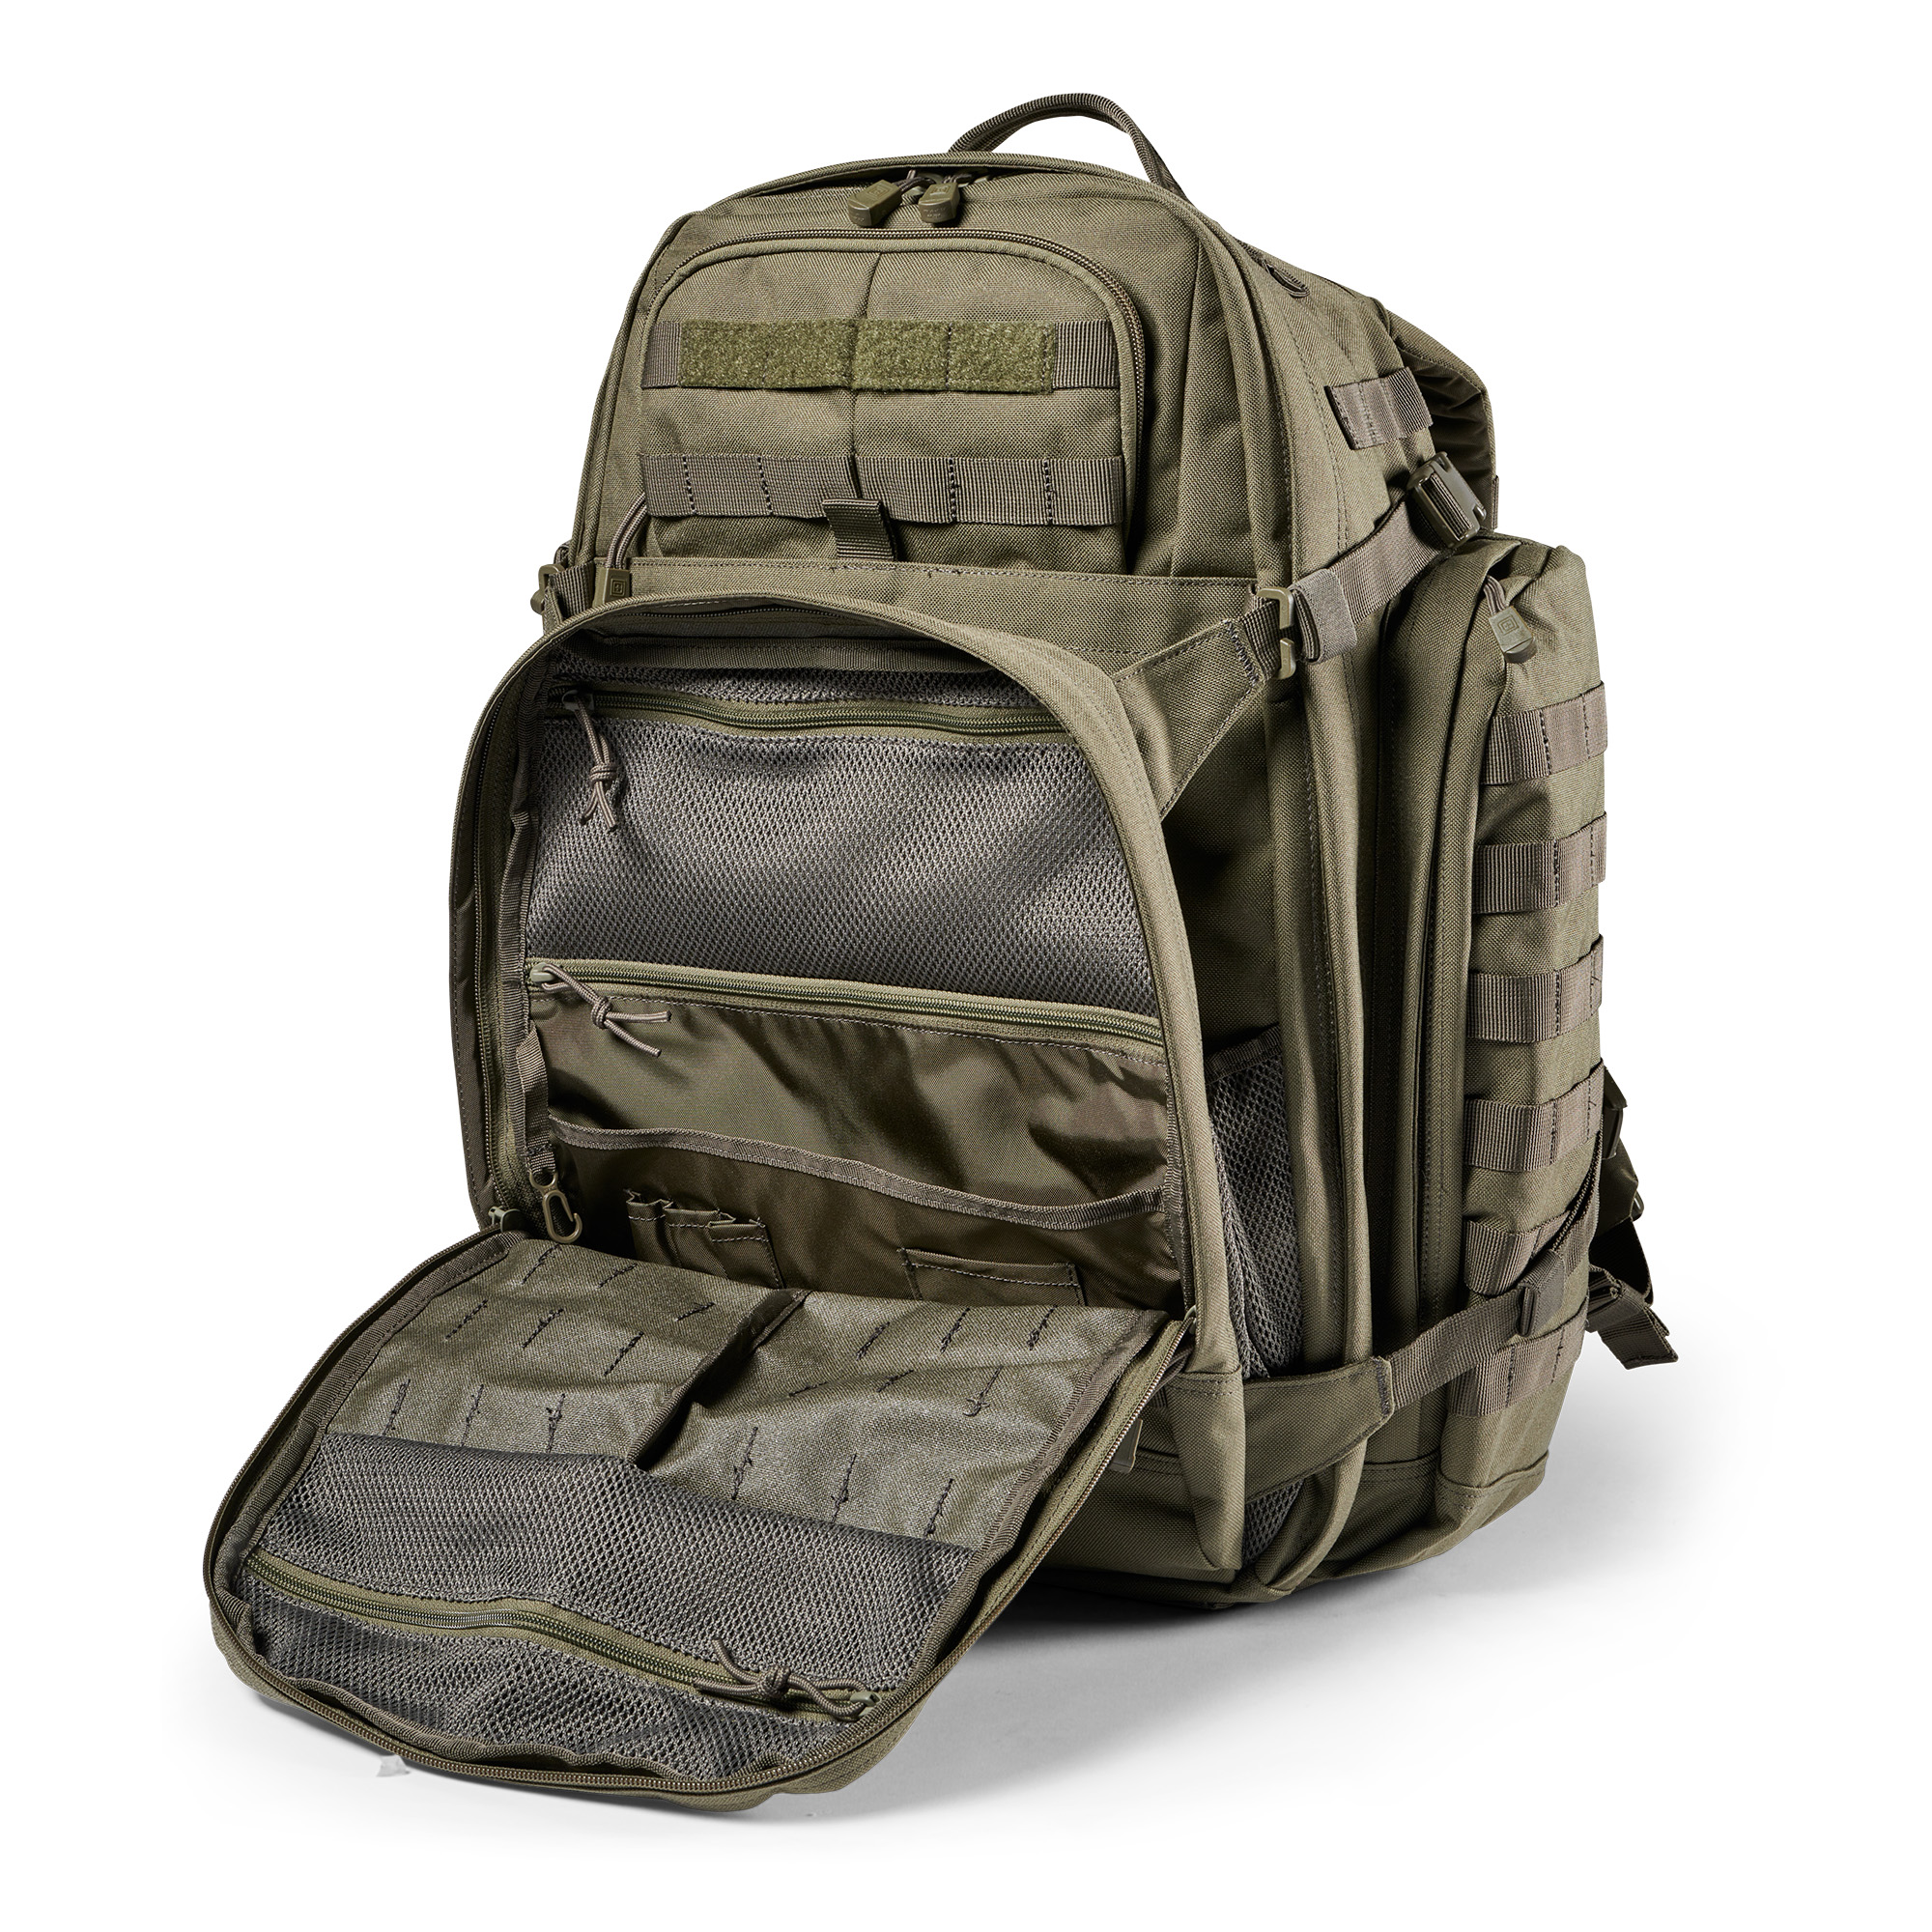 Balo 5.11 Tactical Rush 72 2.0 – Ranger Green